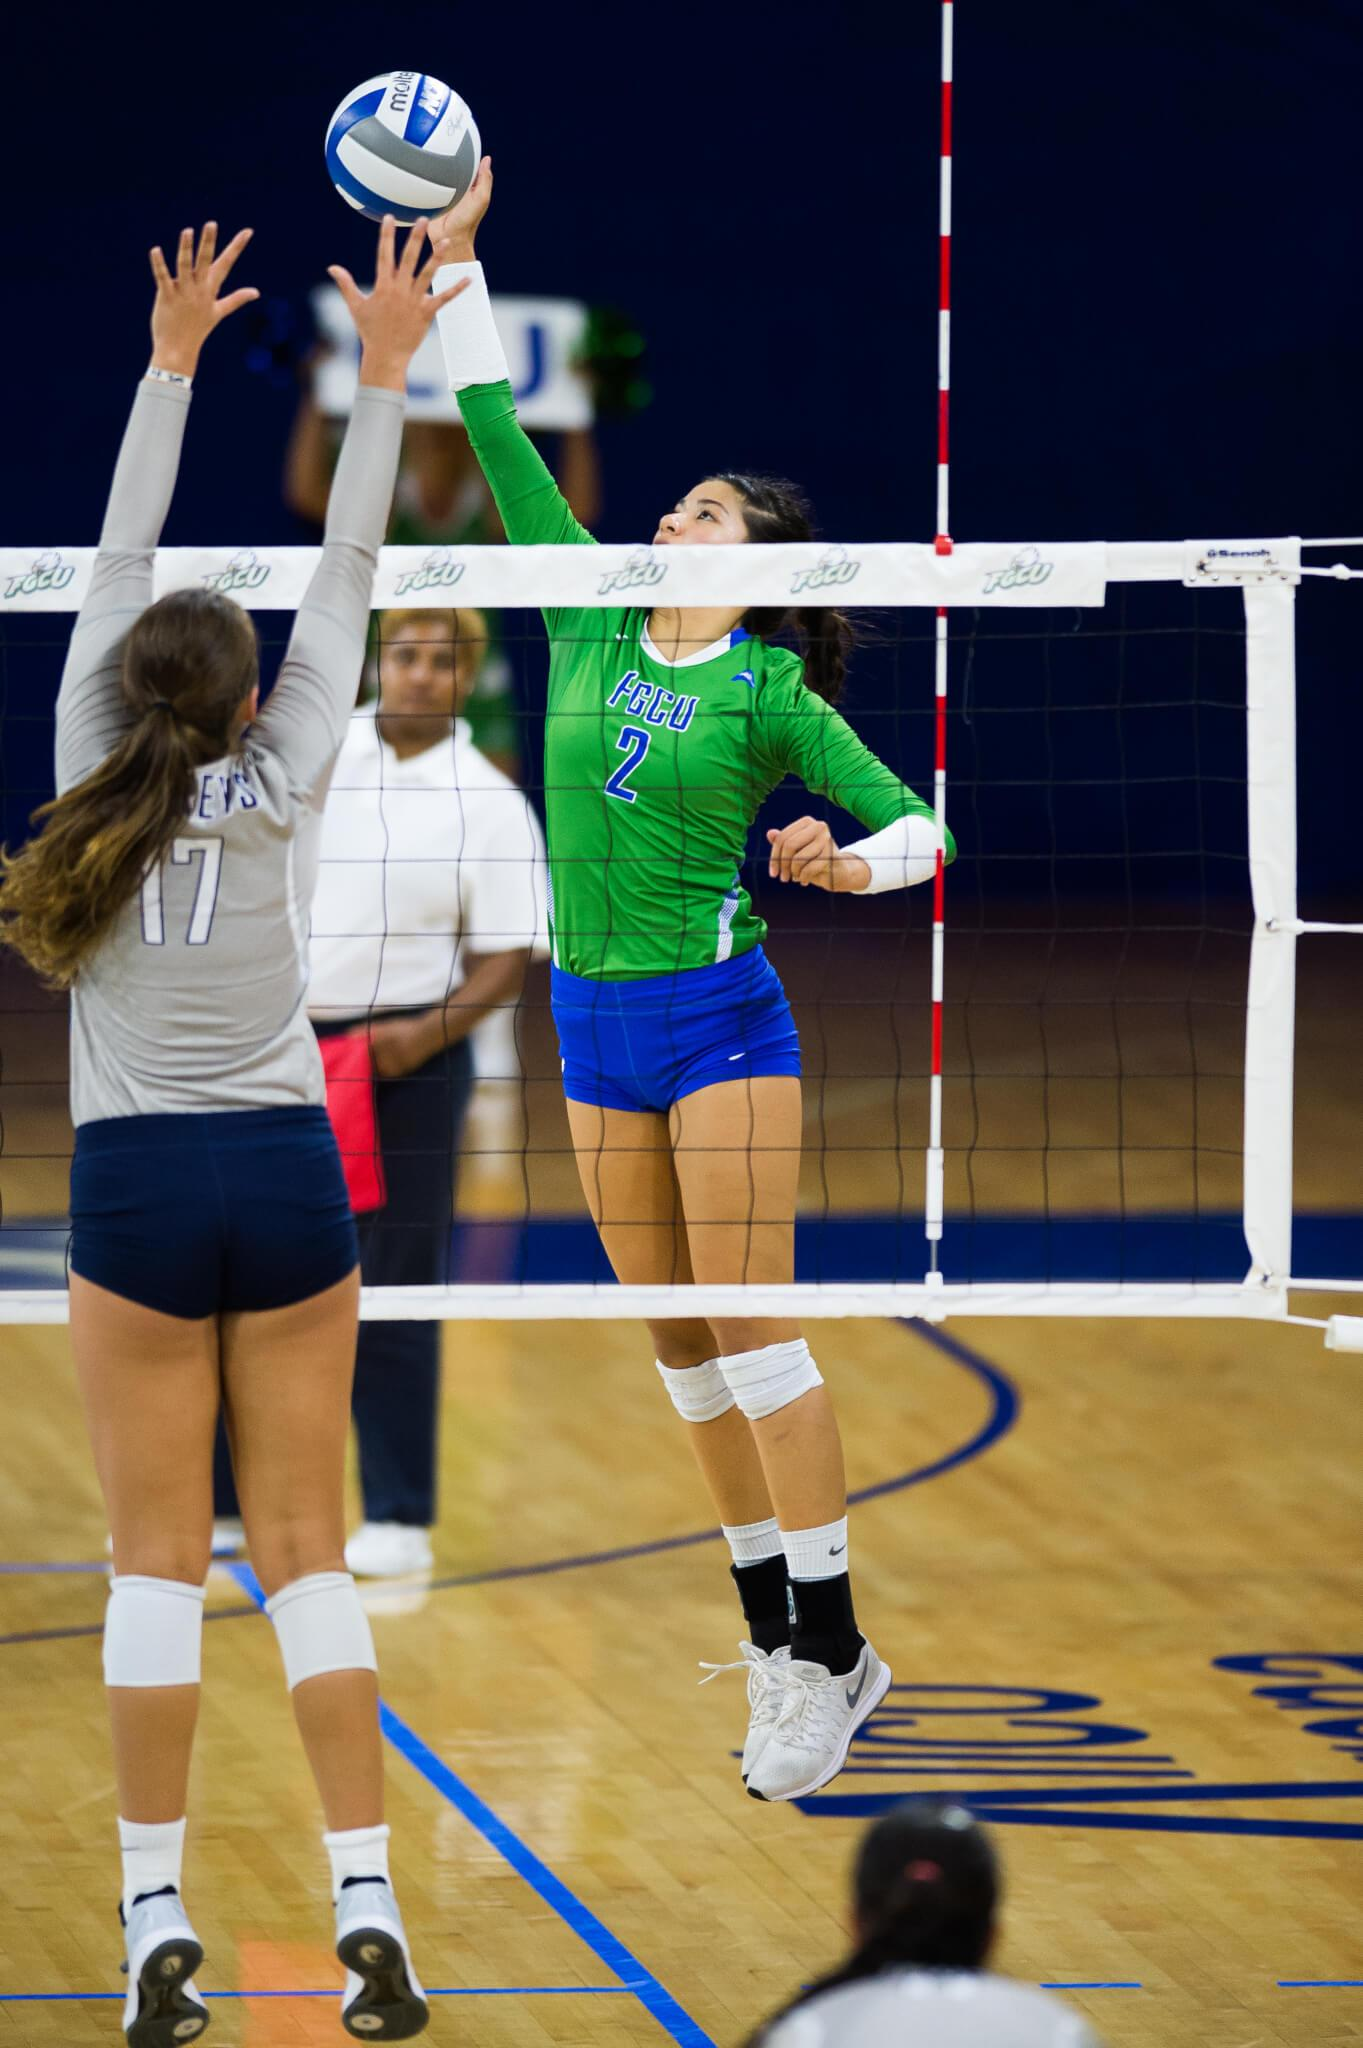 FGCU volleyball claims win over Kennesaw State on Senior Night